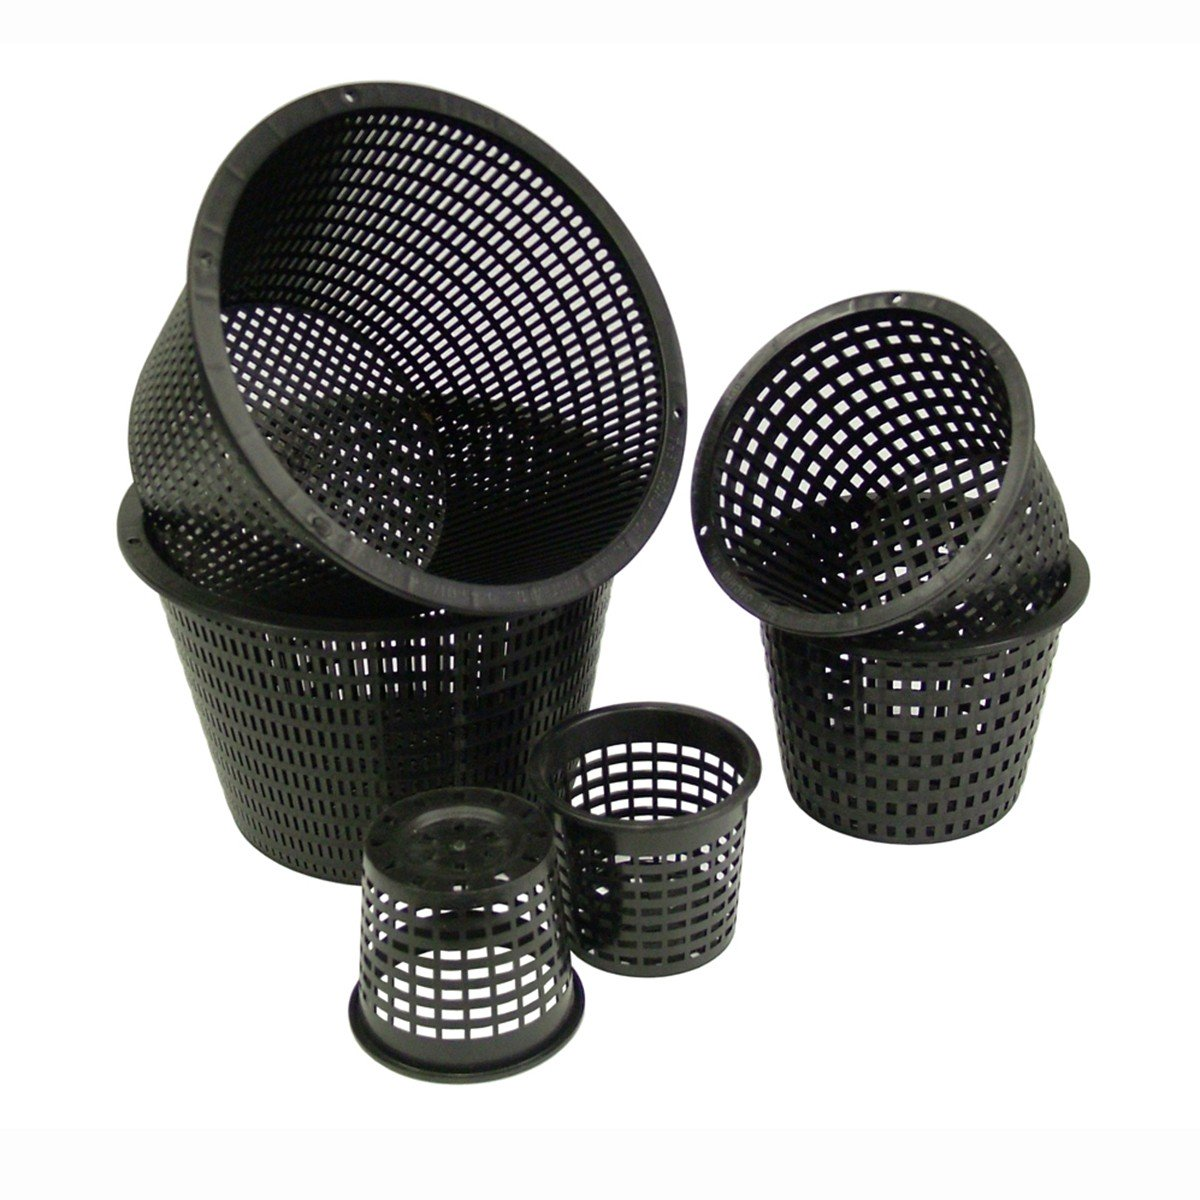 "NET POTS 2"" TO 6"" #724500"